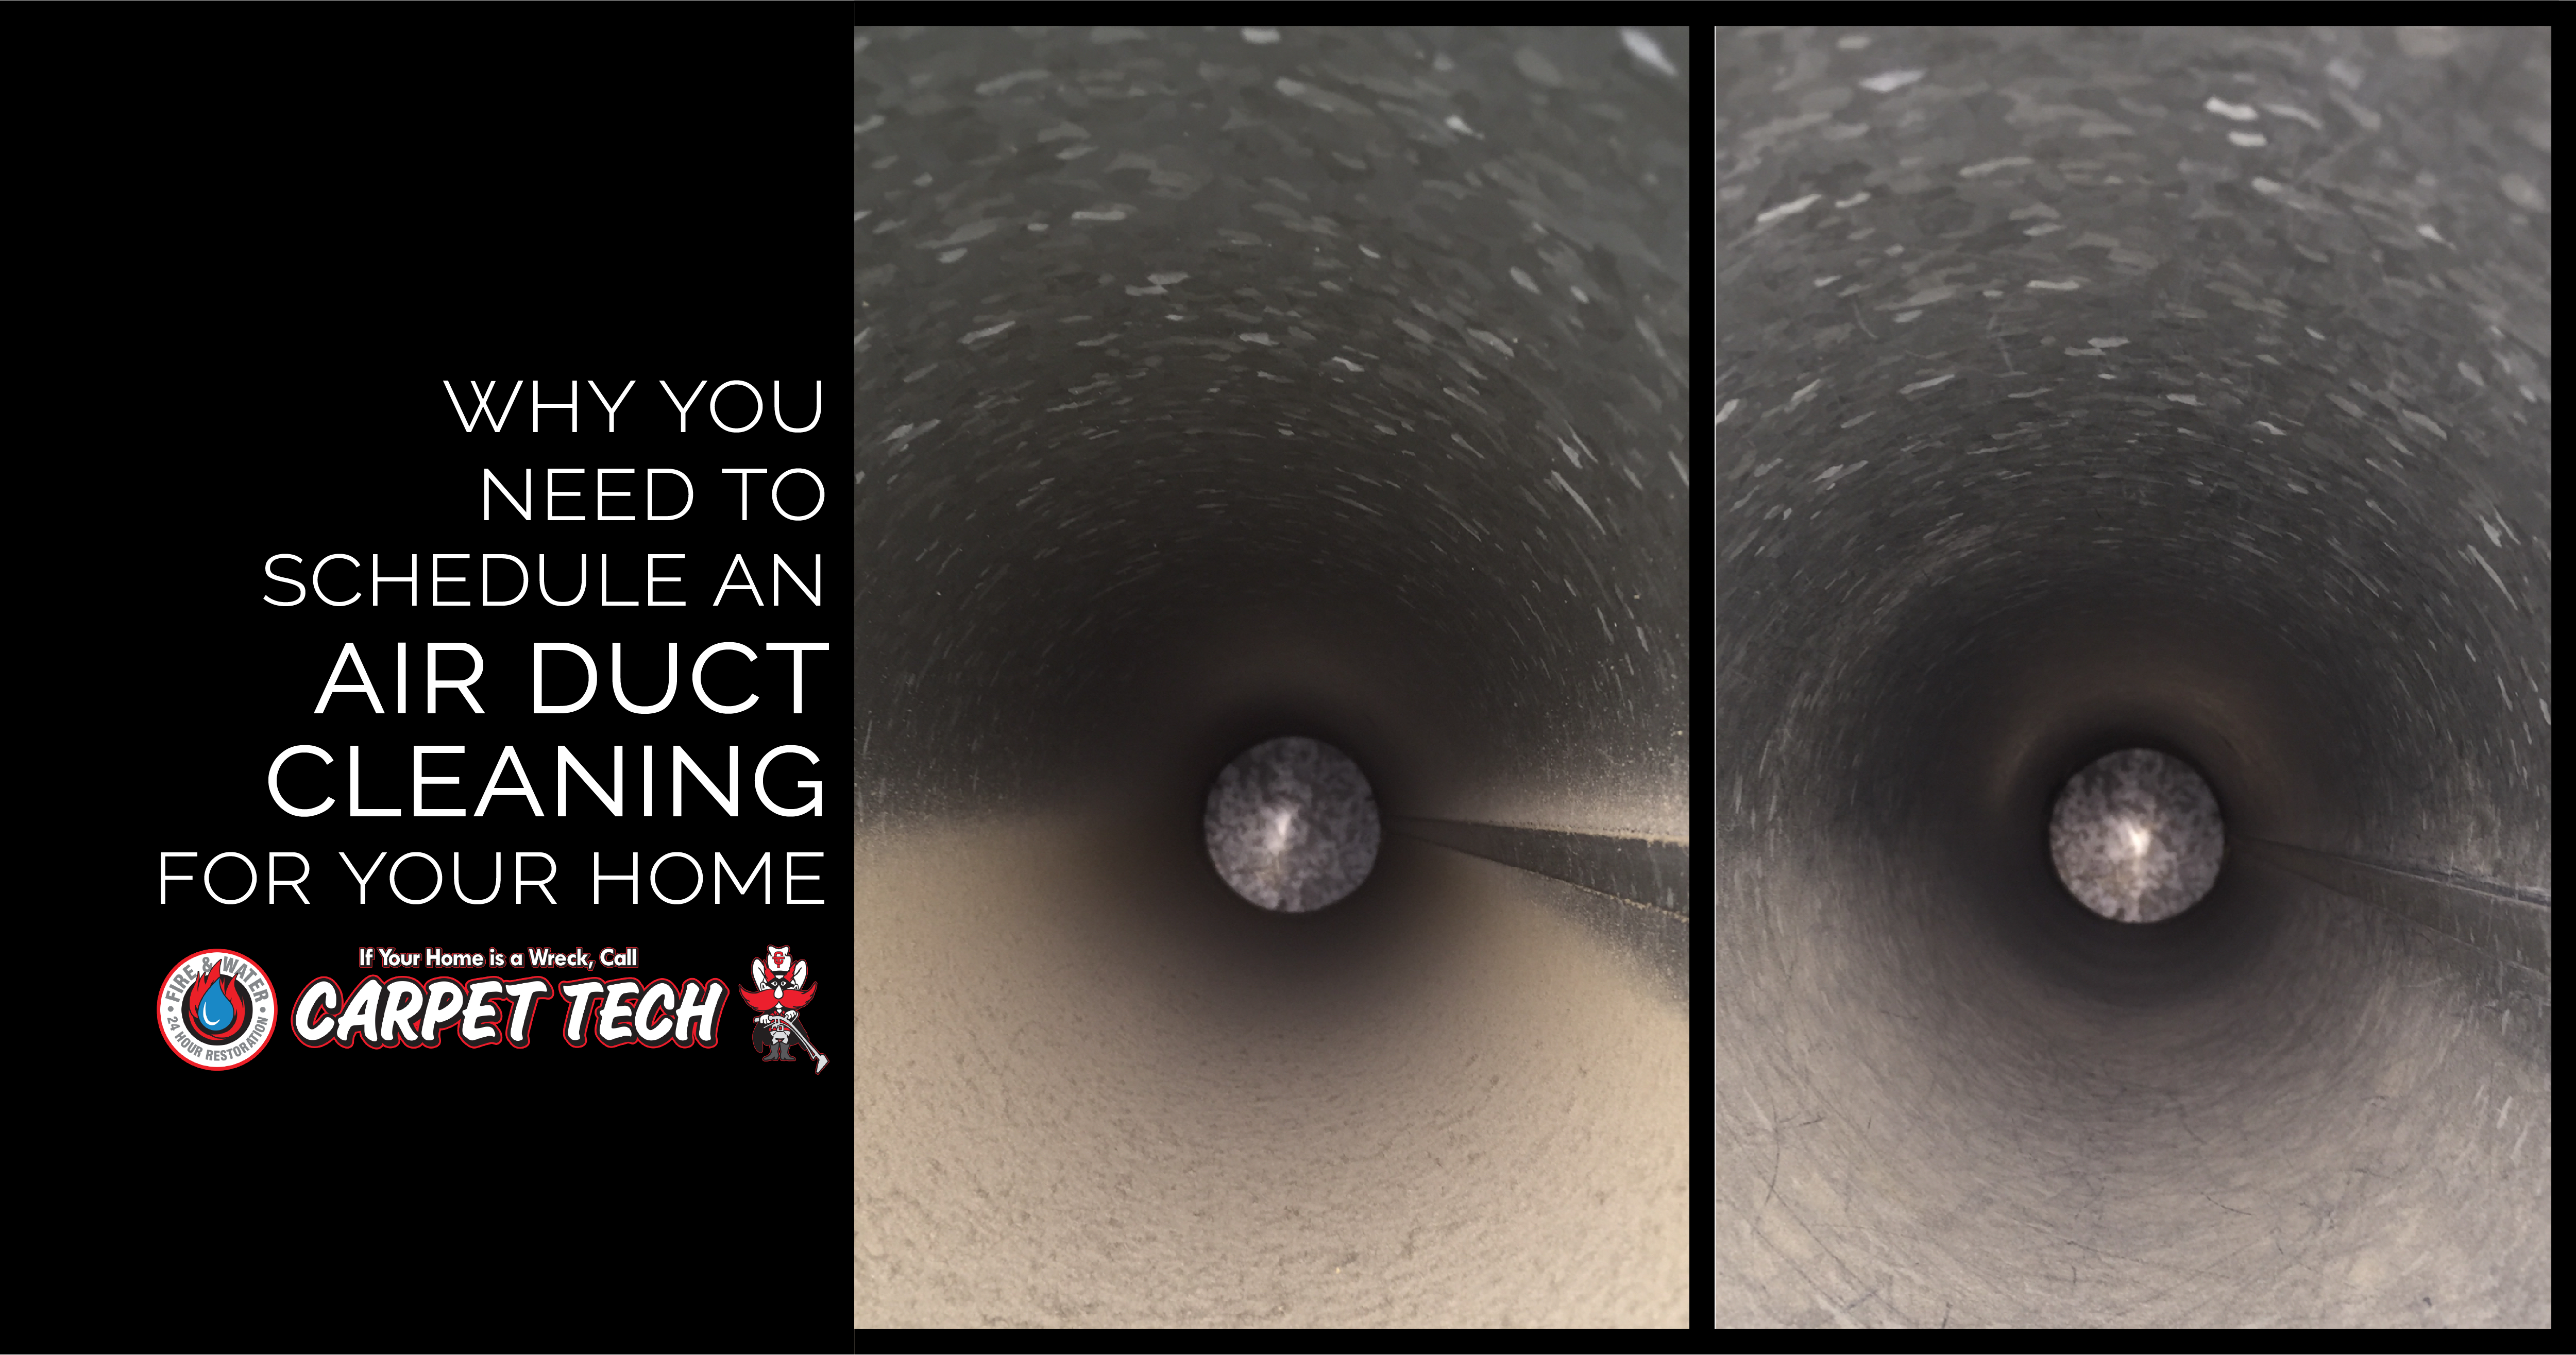 Why You Need to Schedule an Air Duct Cleaning for Your Home